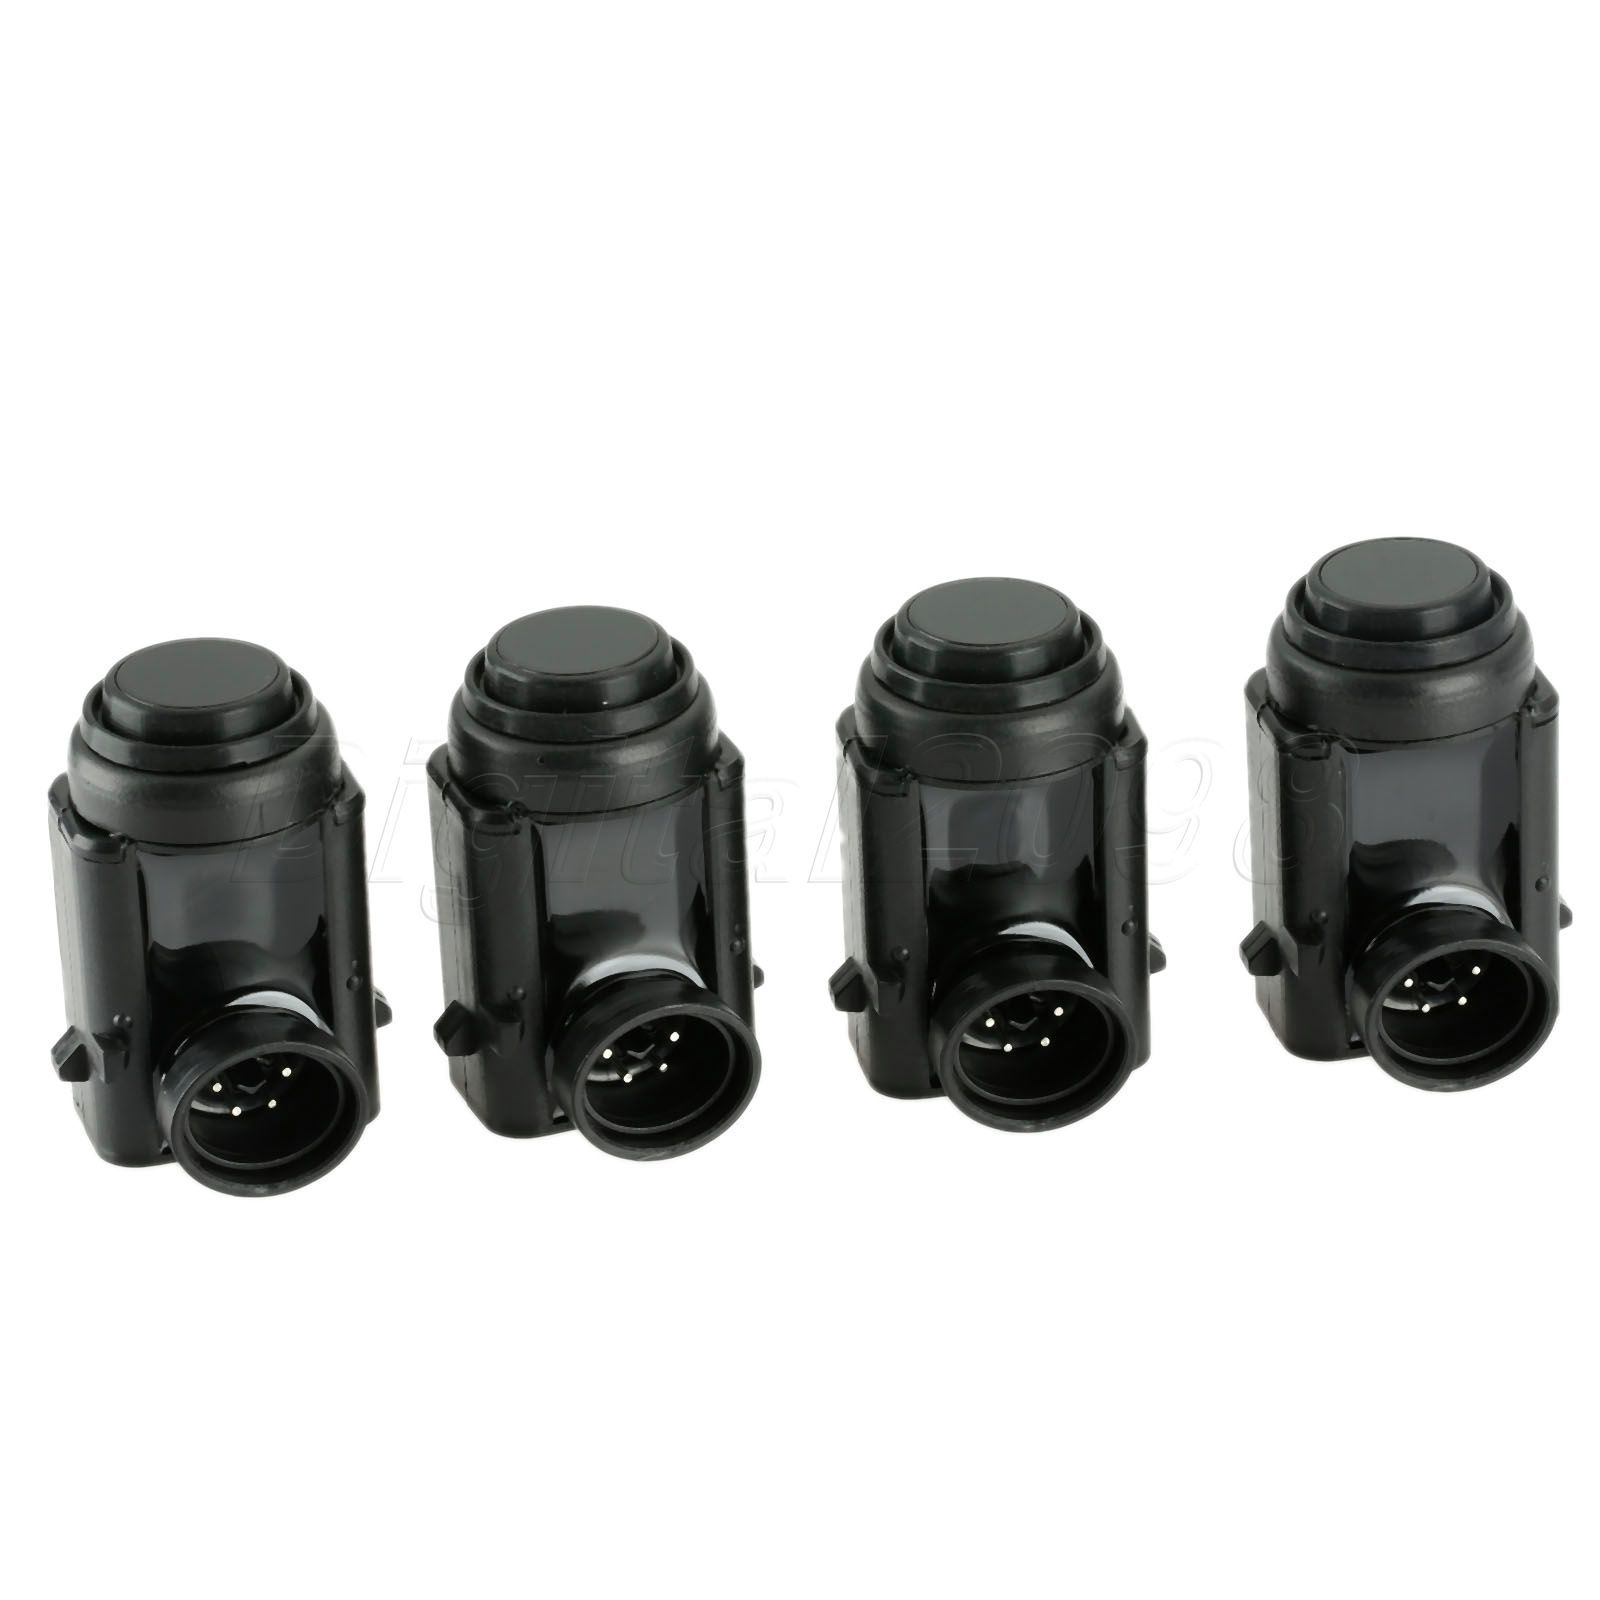 Yetaha 4pcs Parking PDC Sensor A0045428718 0015427418 05120341AA For Mercedes-Benz W203 W209 W210 W220 W163 W168 W251 S203 C203